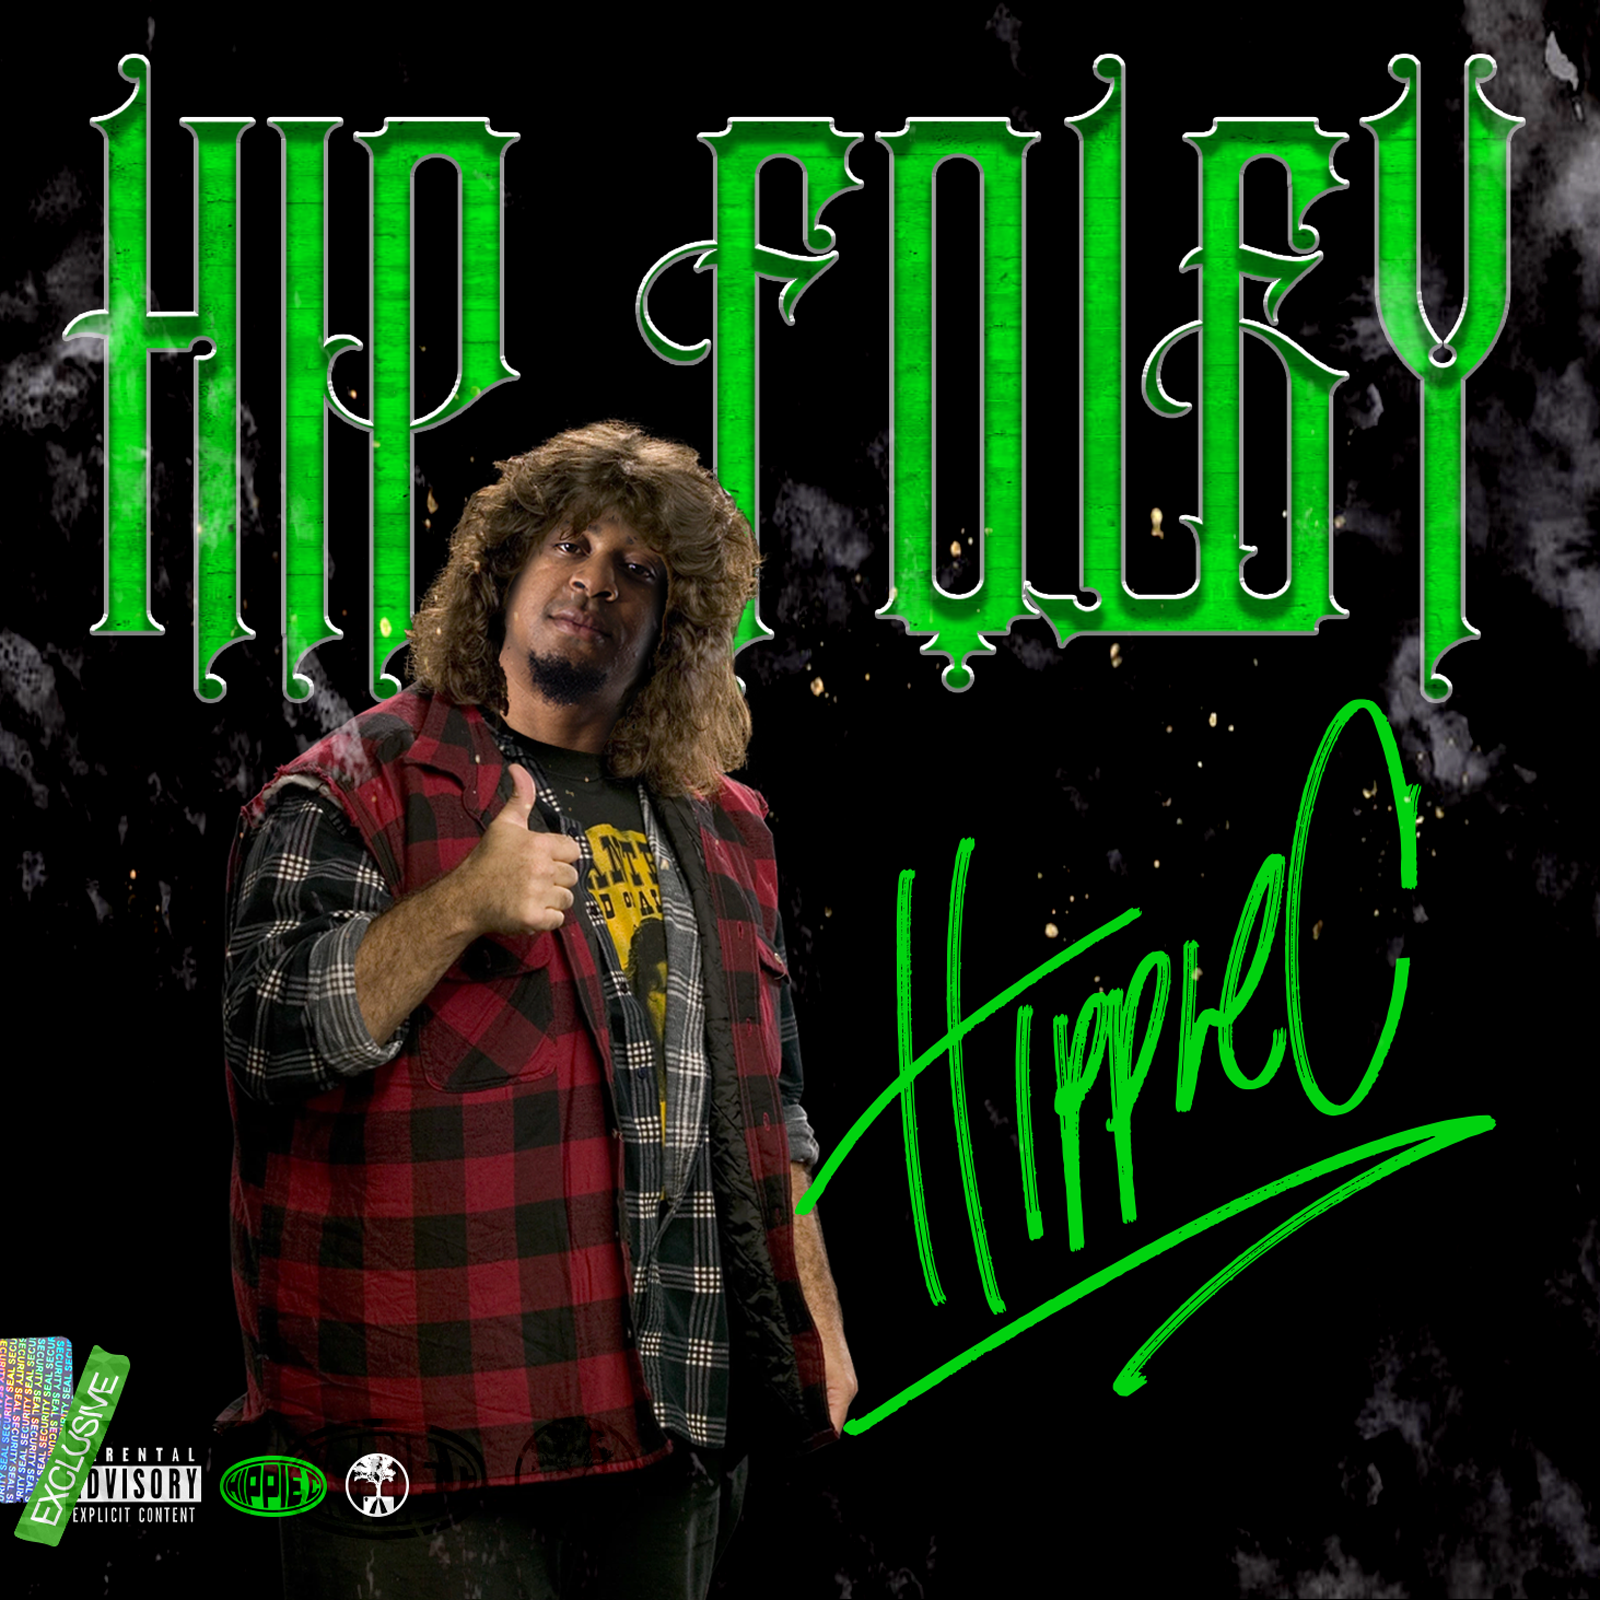 hc-hipfoley-cover2 (1).png